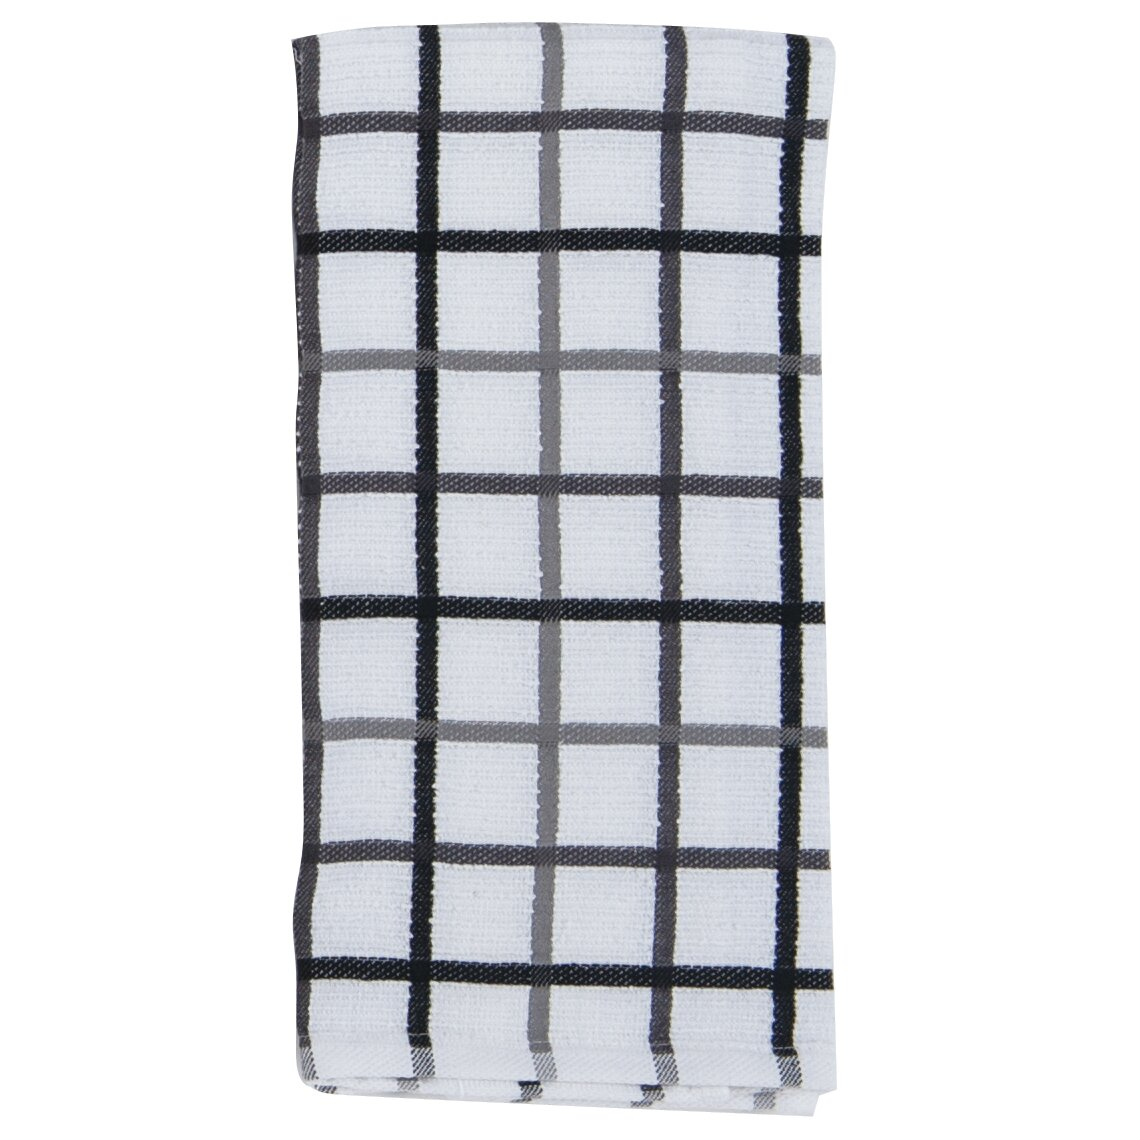 Kay dee designs windowpane towel reviews wayfair Kay dee designs kitchen towels